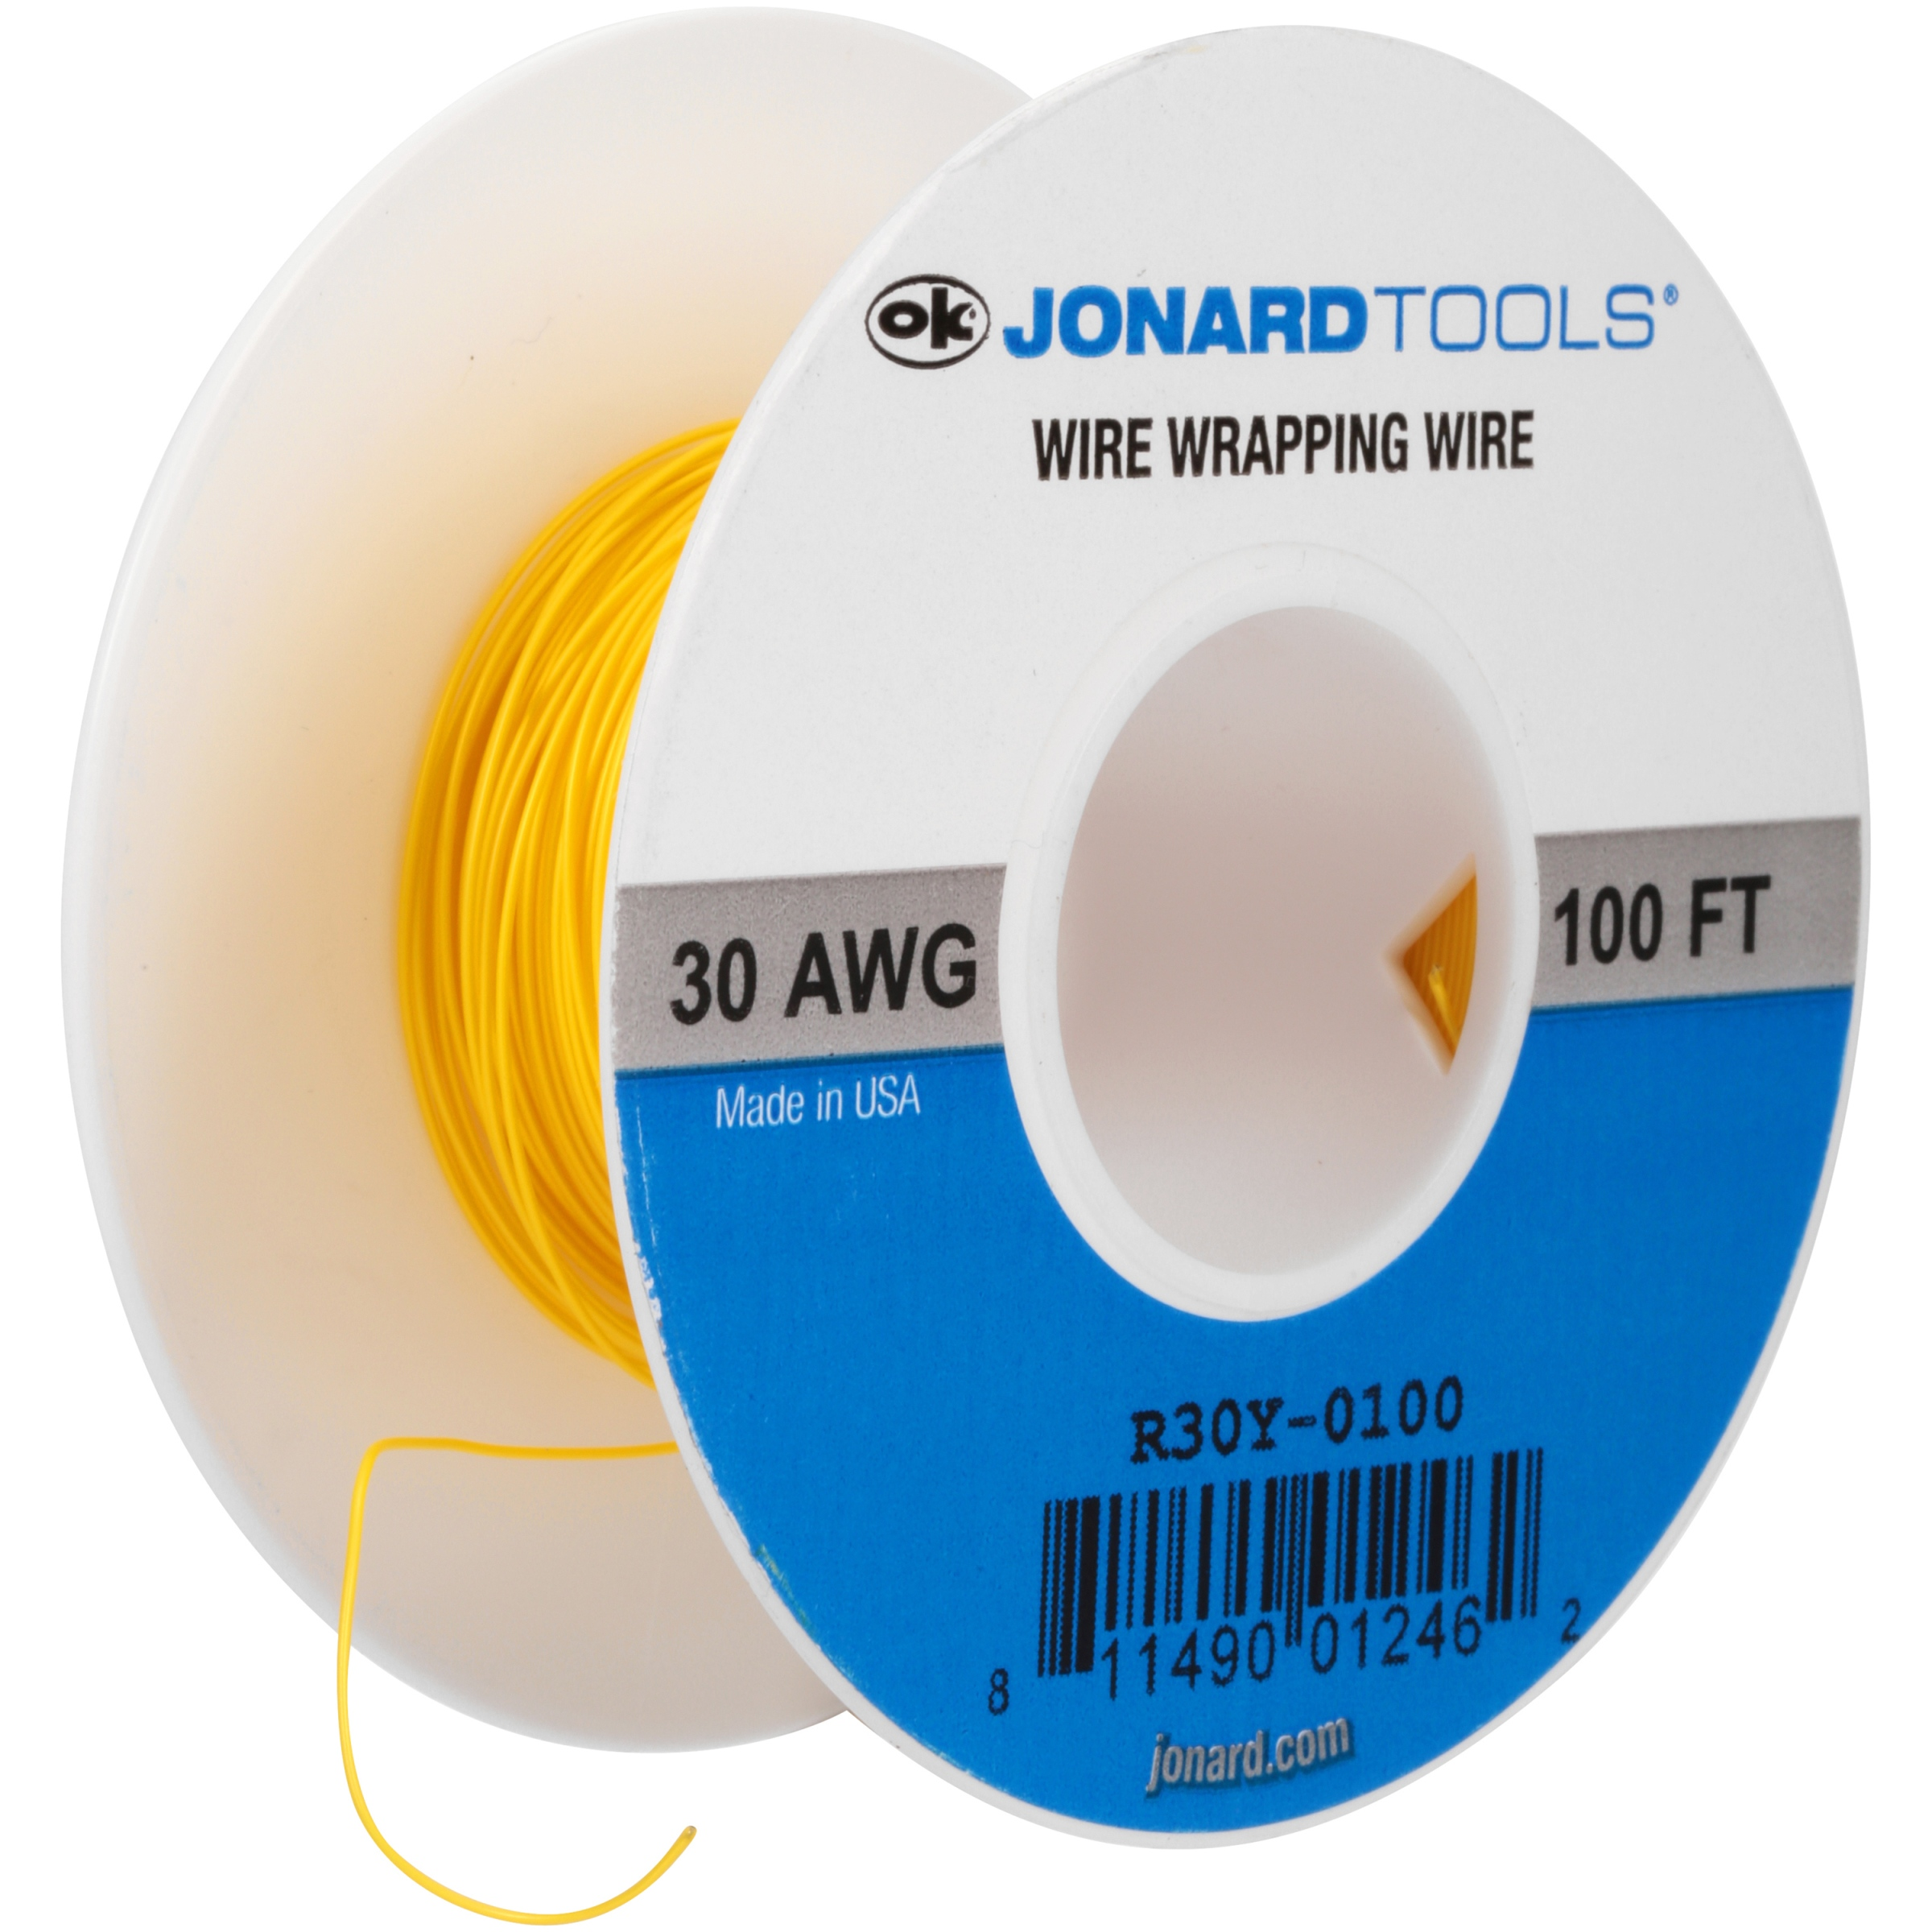 Jonard Tools® Yellow 100 ft. 30 AWG Wire Wrapping Wire